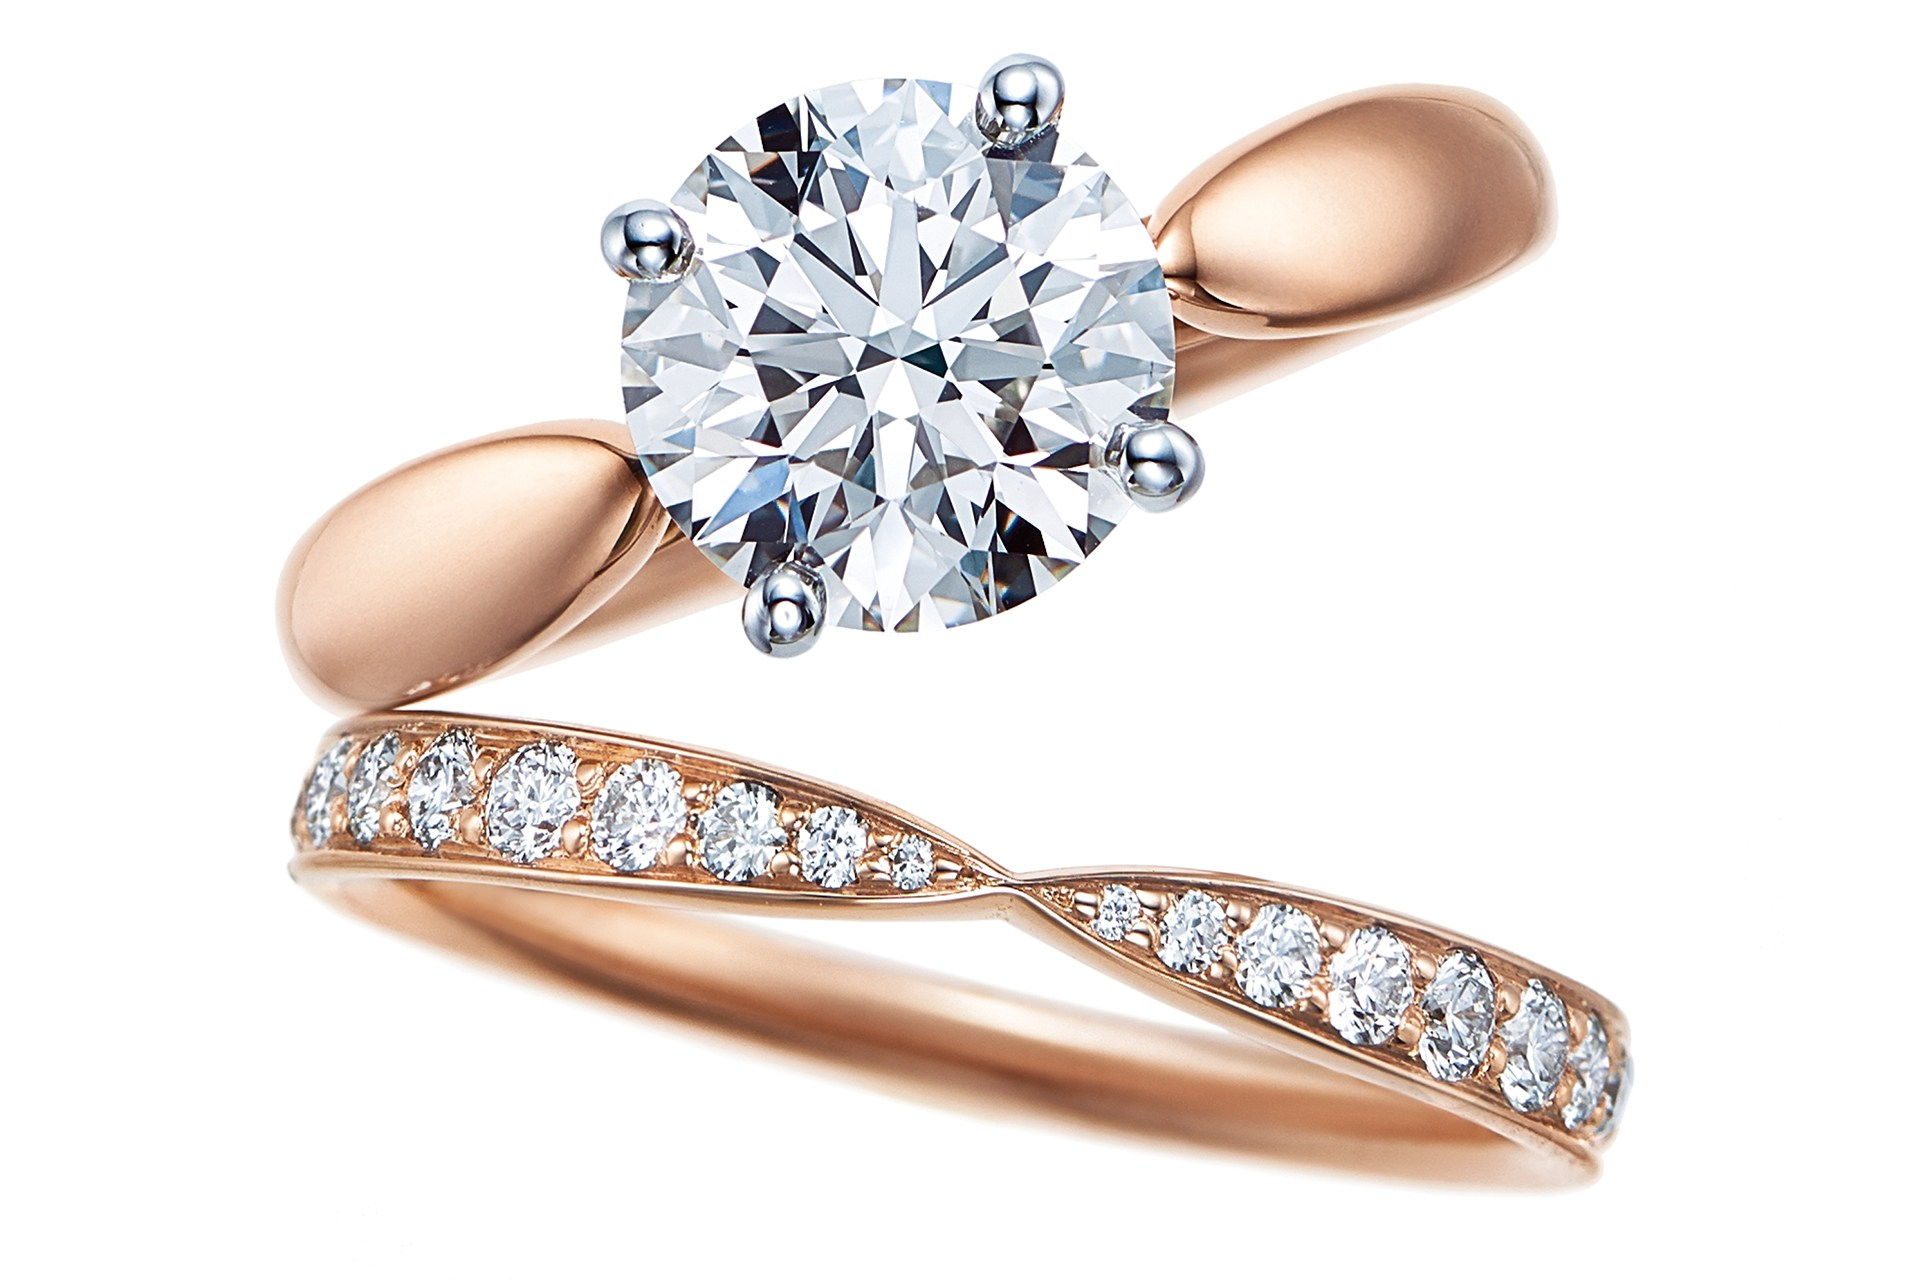 How To Choose The Perfect Wedding Rings To Match Your Engagement Ring